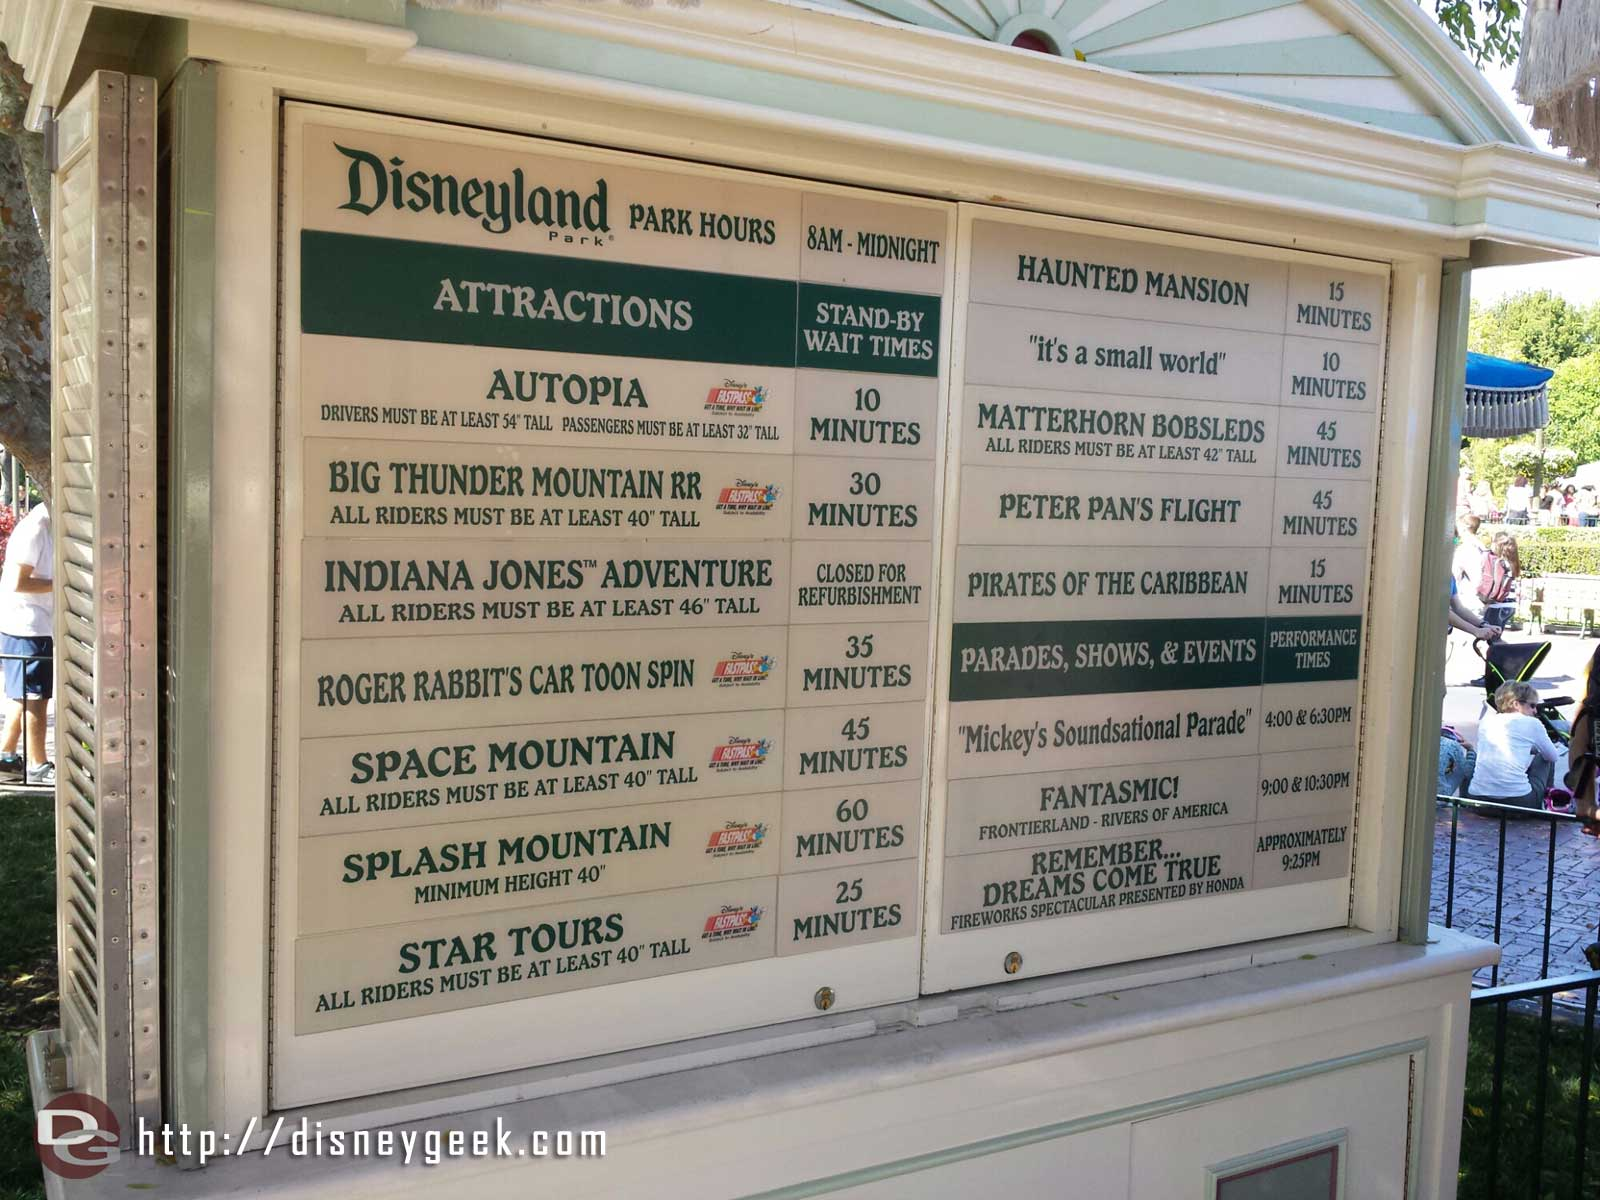 #Disneyland wait times around 3:15pm